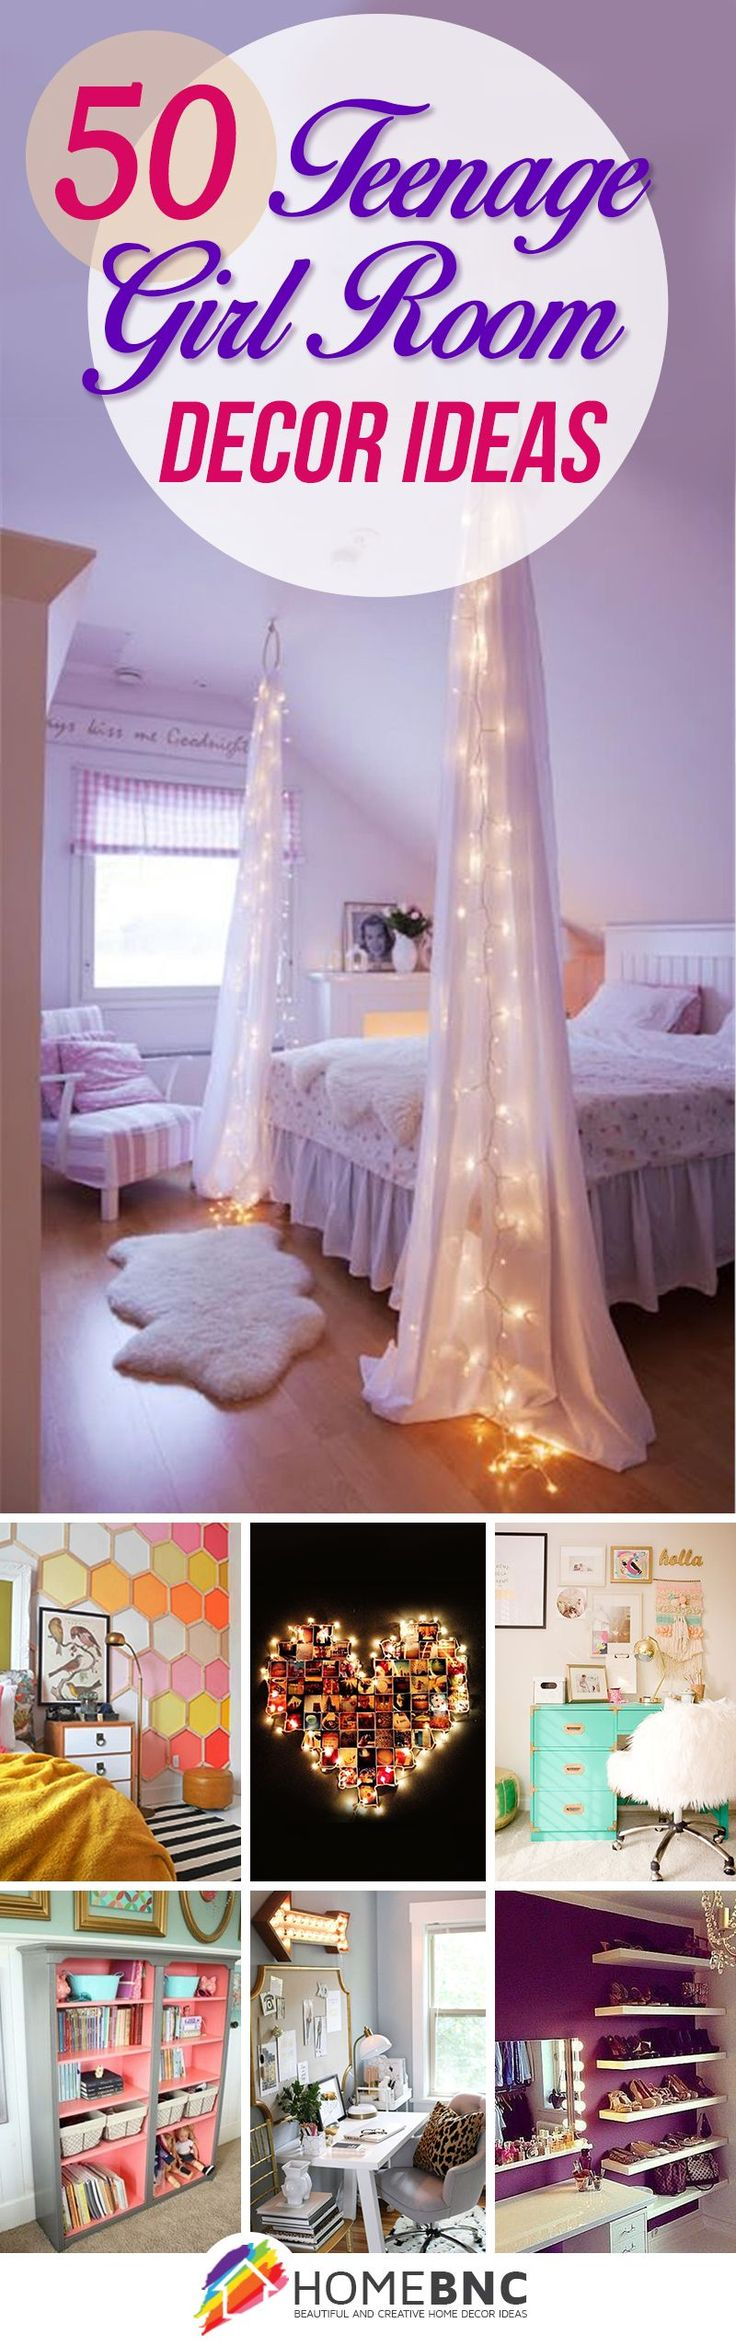 Teen Room Design Ideas 10 contemporary teen bedroom design ideas 50 Stunning Ideas For A Teen Girls Bedroom